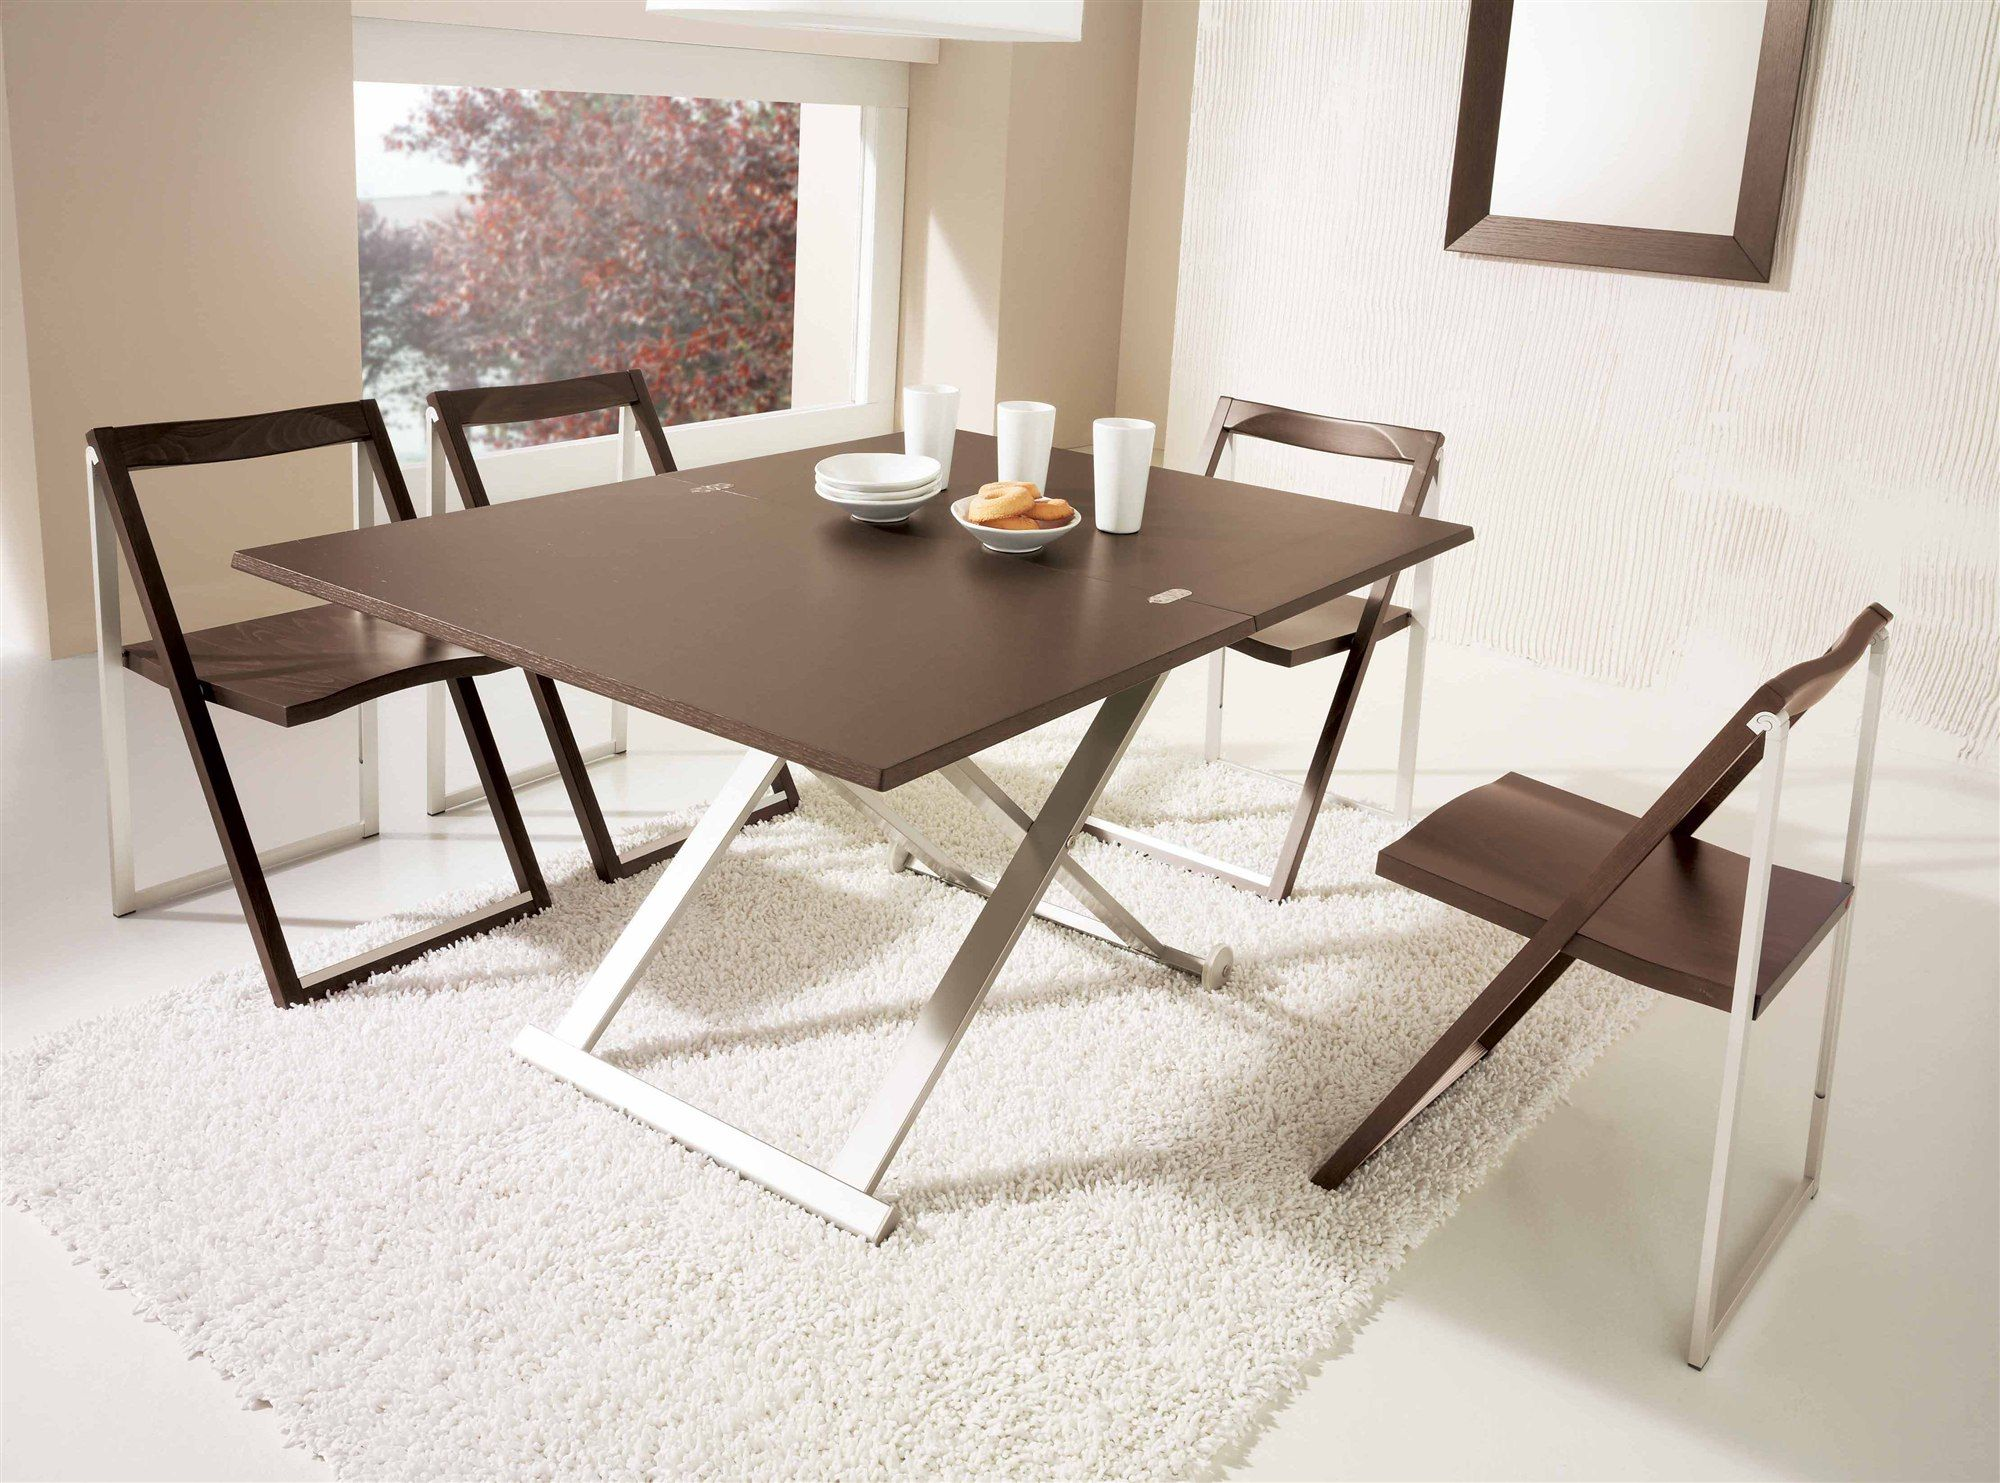 apartment folding kitchen table are perfect for your limited space